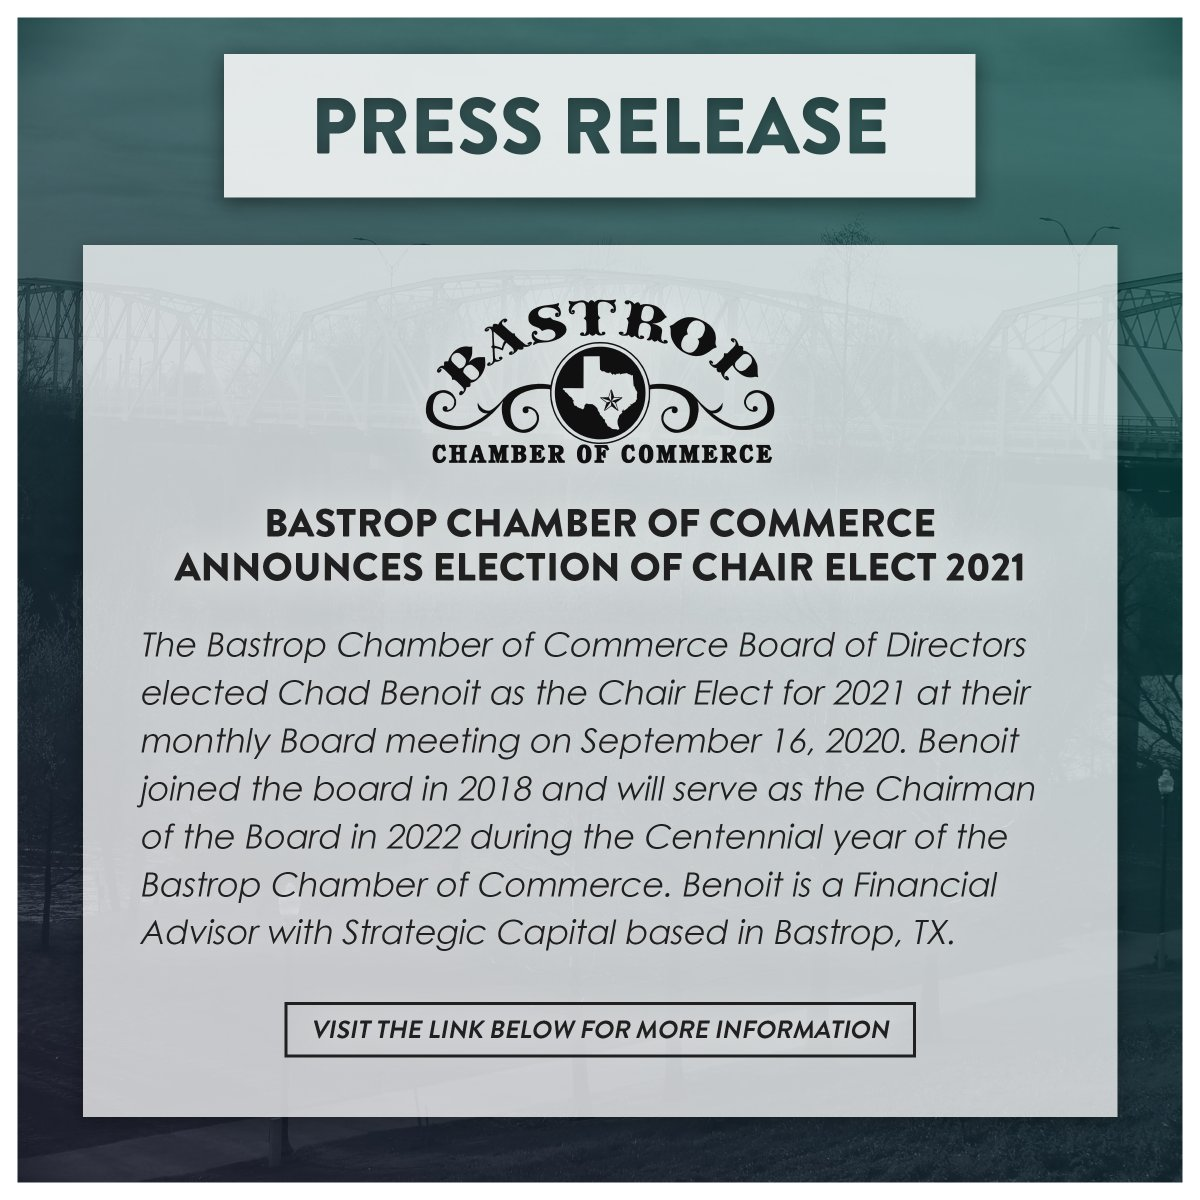 Press Release from the Bastrop Chamber of Commerce! Visit the link below for more information!